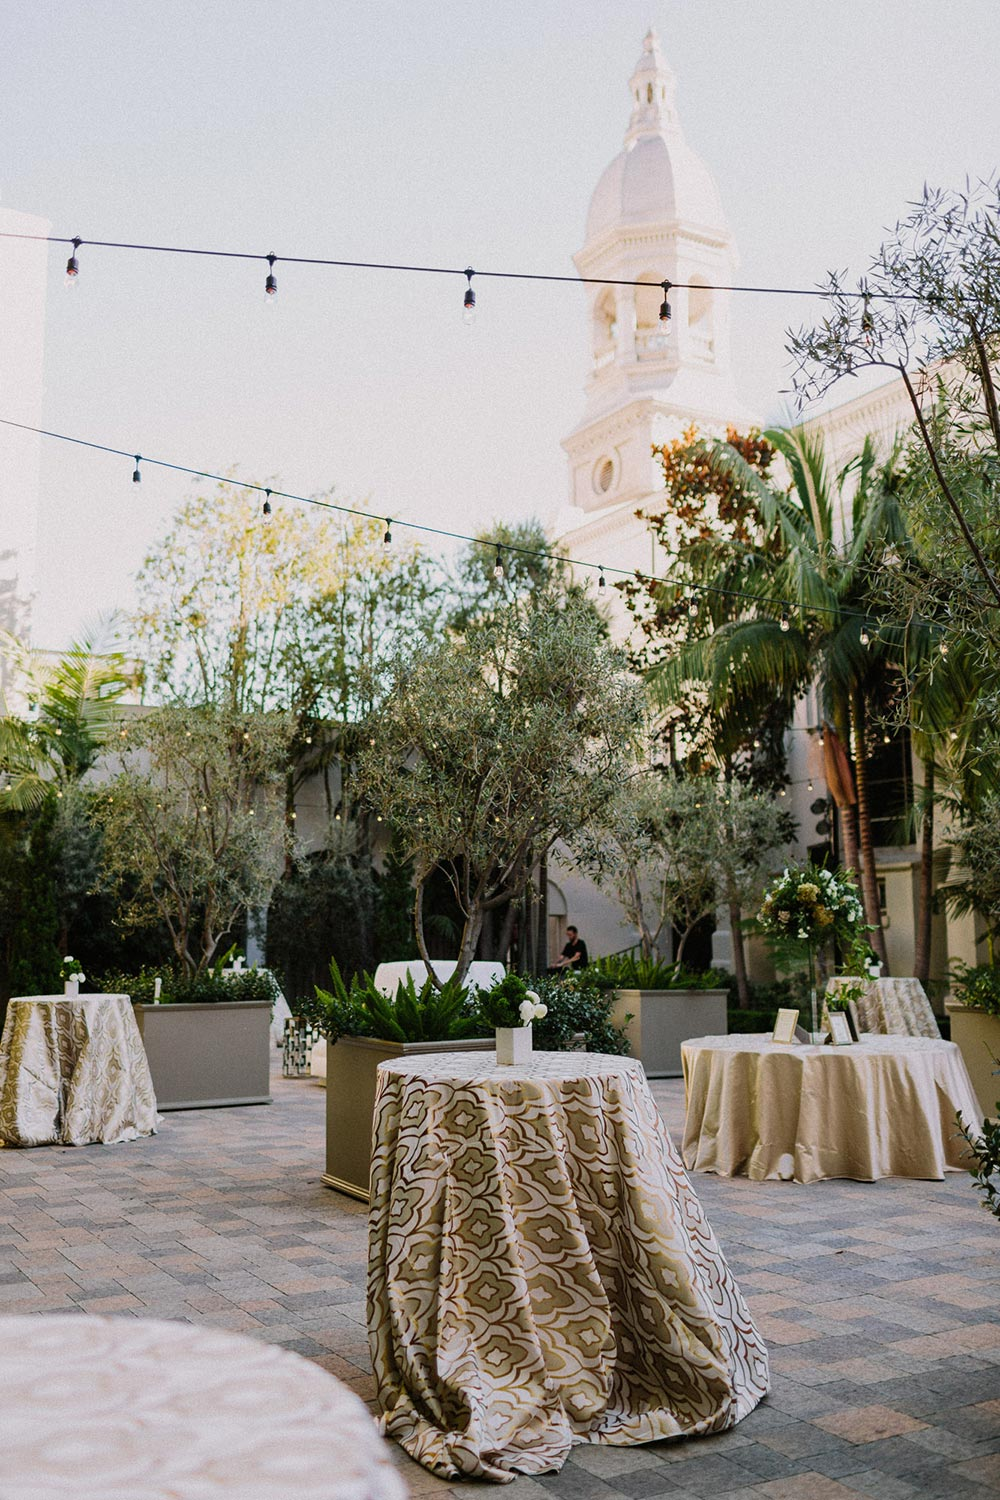 outdoor wedding cocktail hour with market lights and warm linens